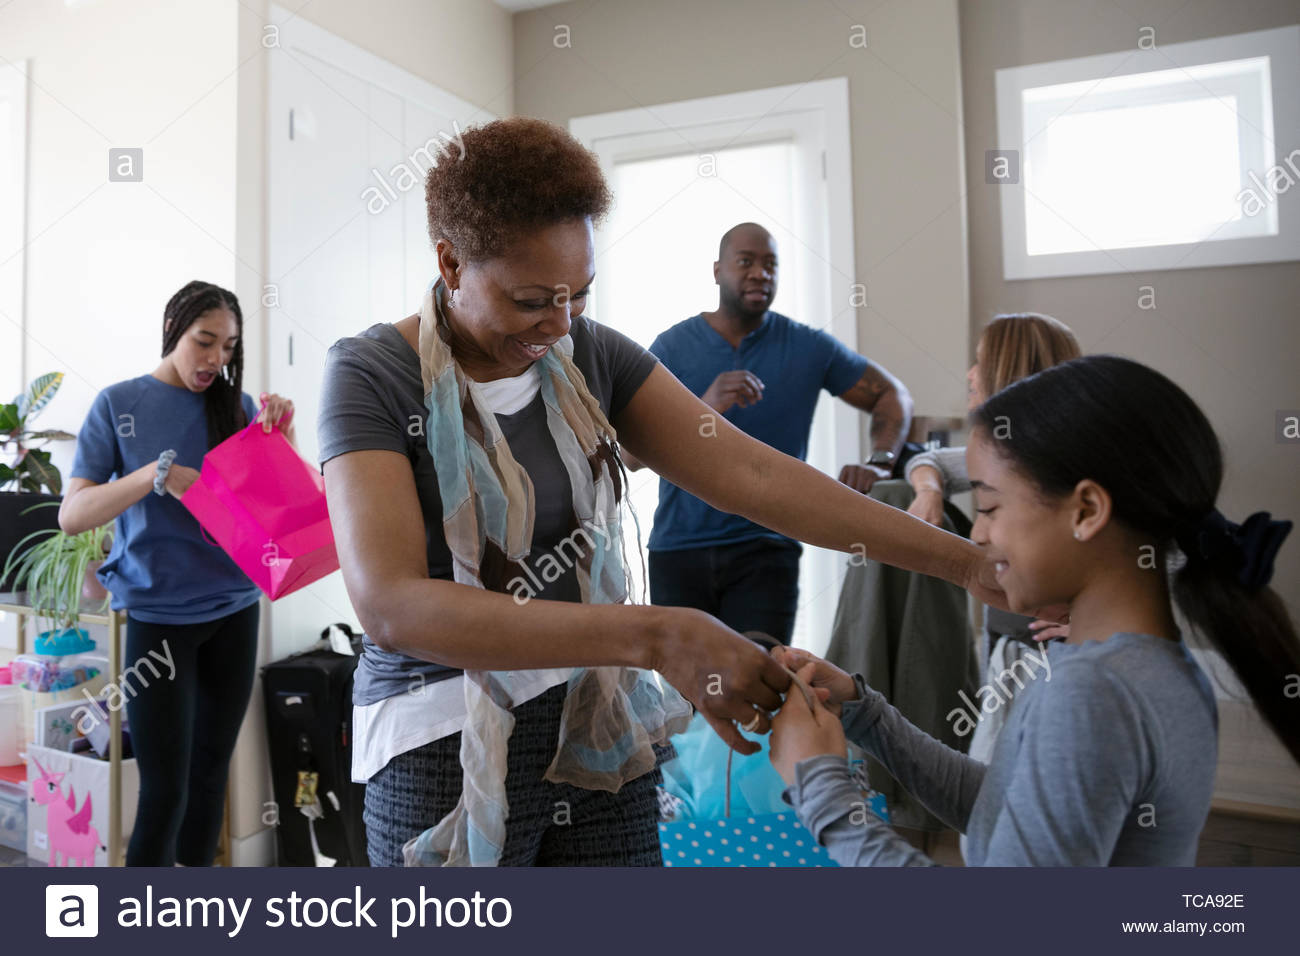 Grandmother giving gift to granddaughter - Stock Image